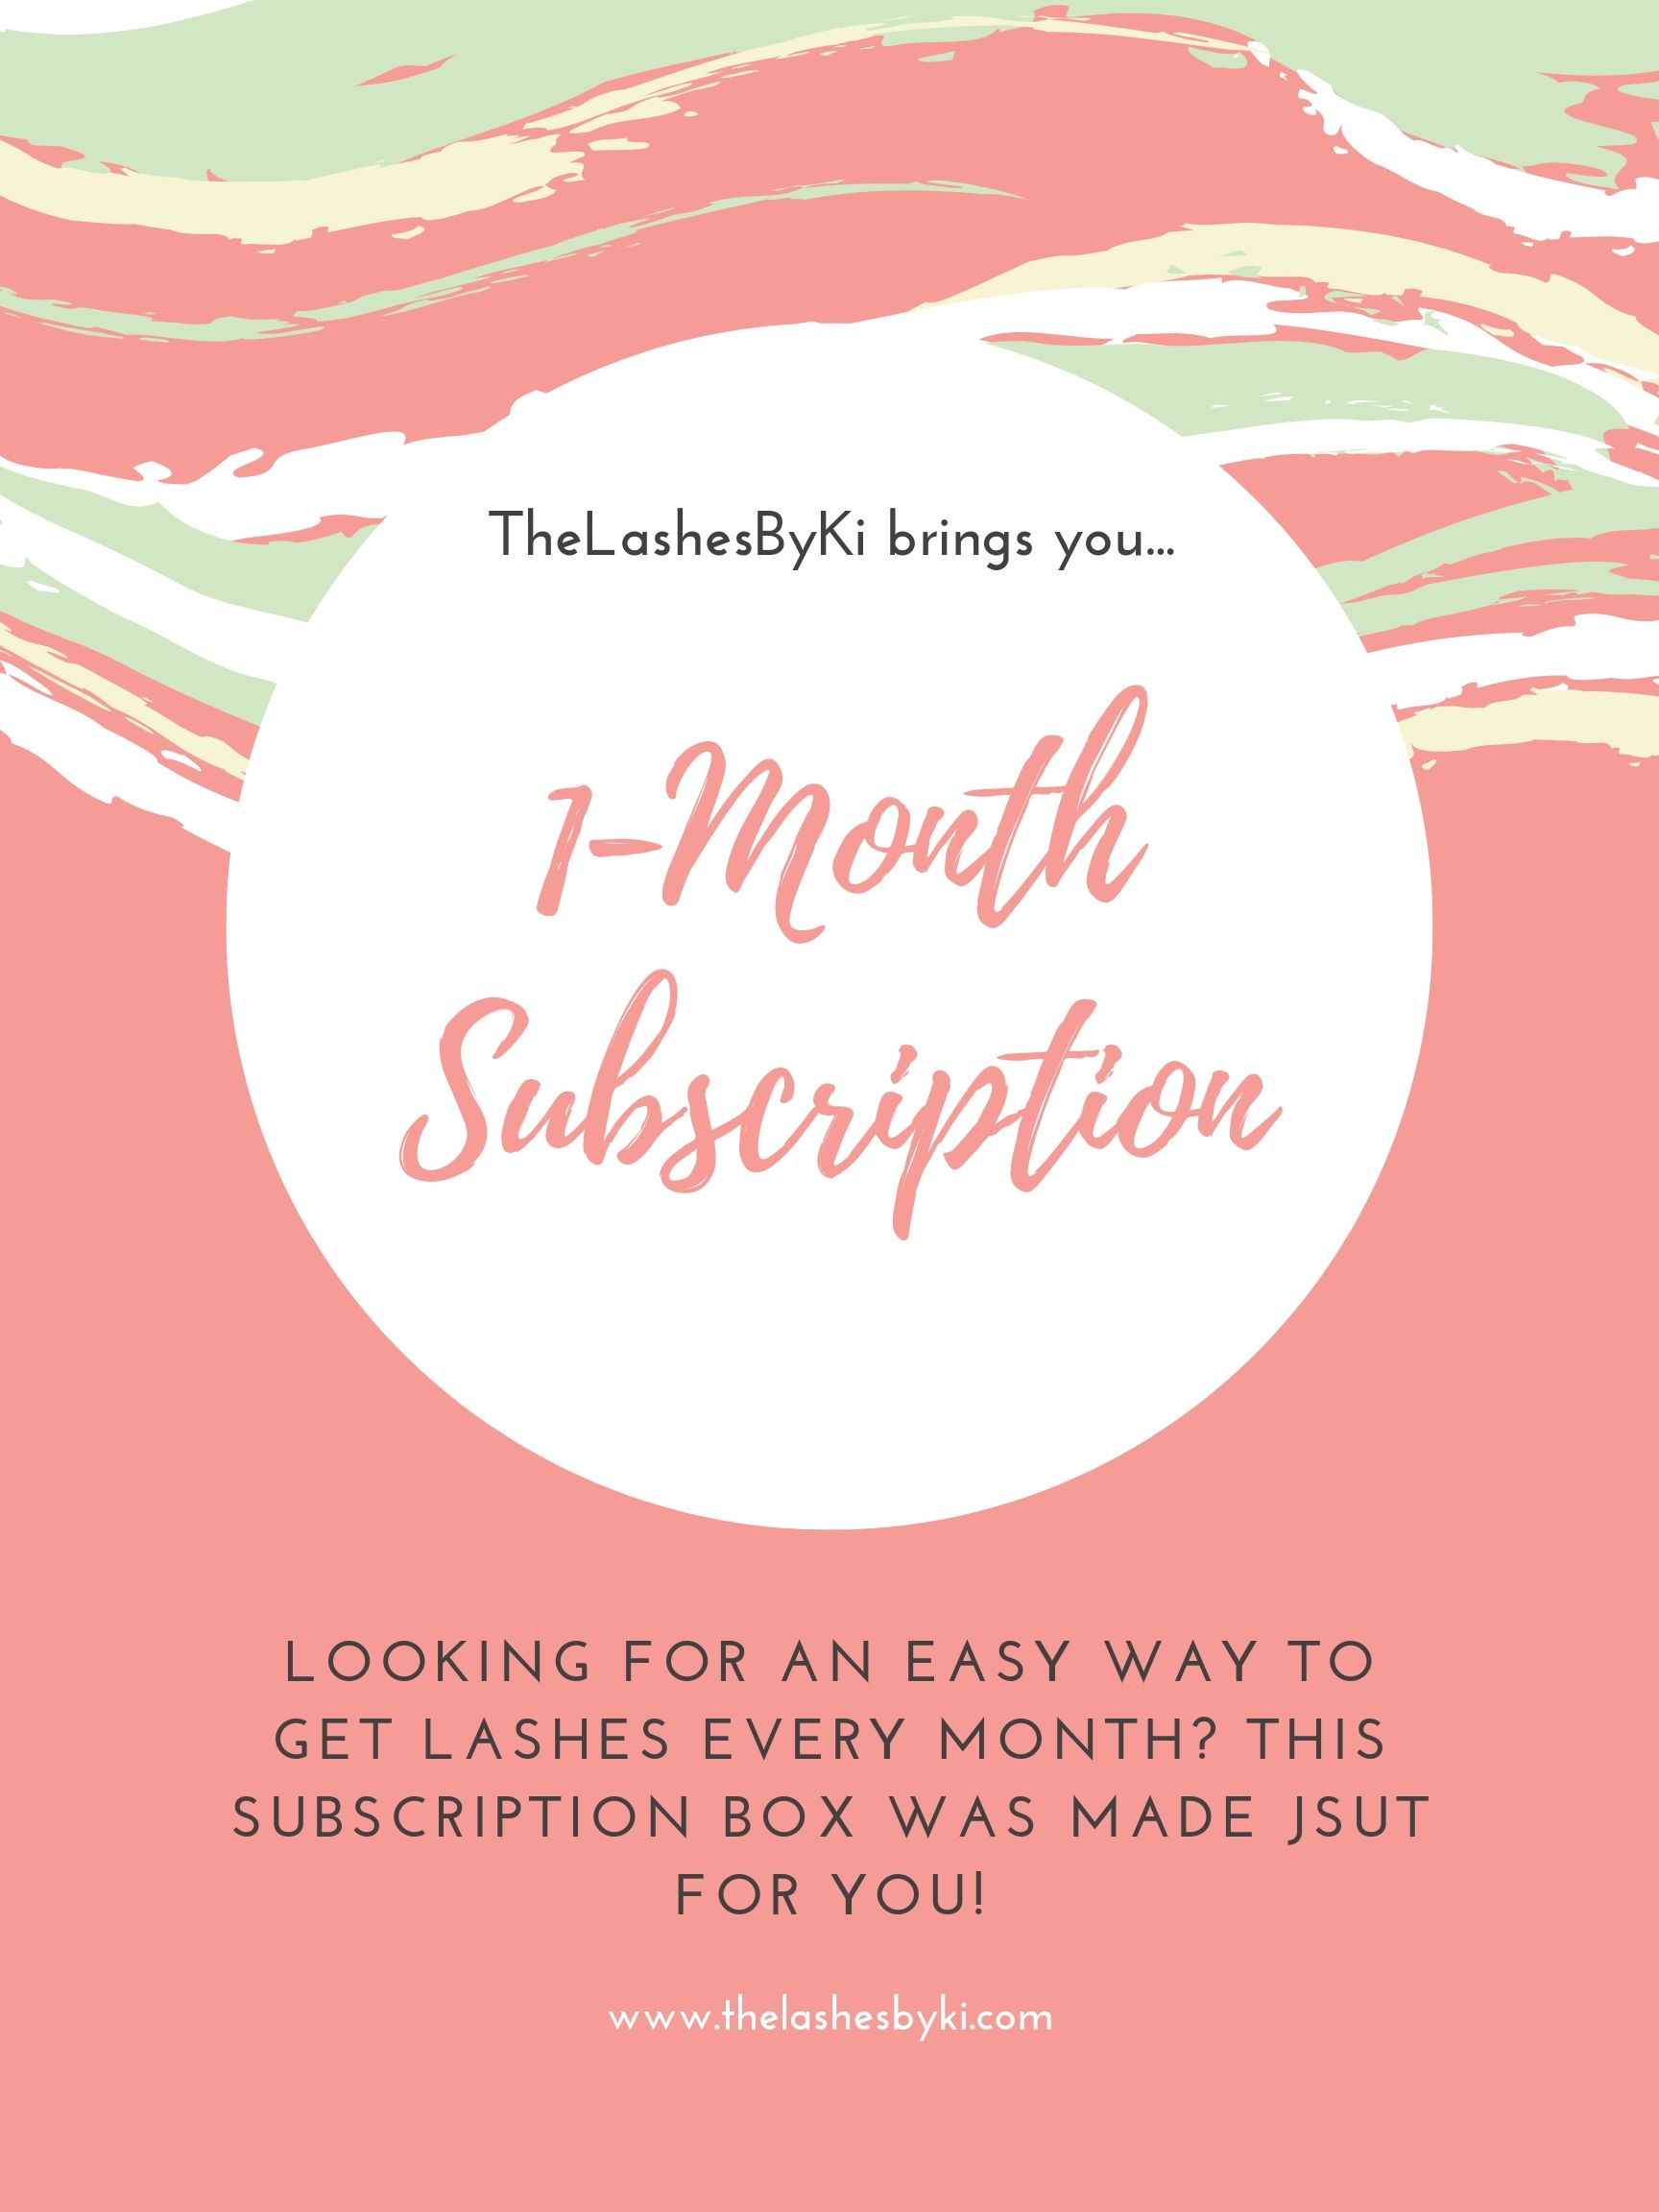 Now introducing Monthly Subscriptions! - Want to enjoy 4+ pairs of lashes every month without the hassle of re-ordering? Sign up for our monthly subscription service! (Also available for 3 month subscriptions). Auto renews. Cancel any time.